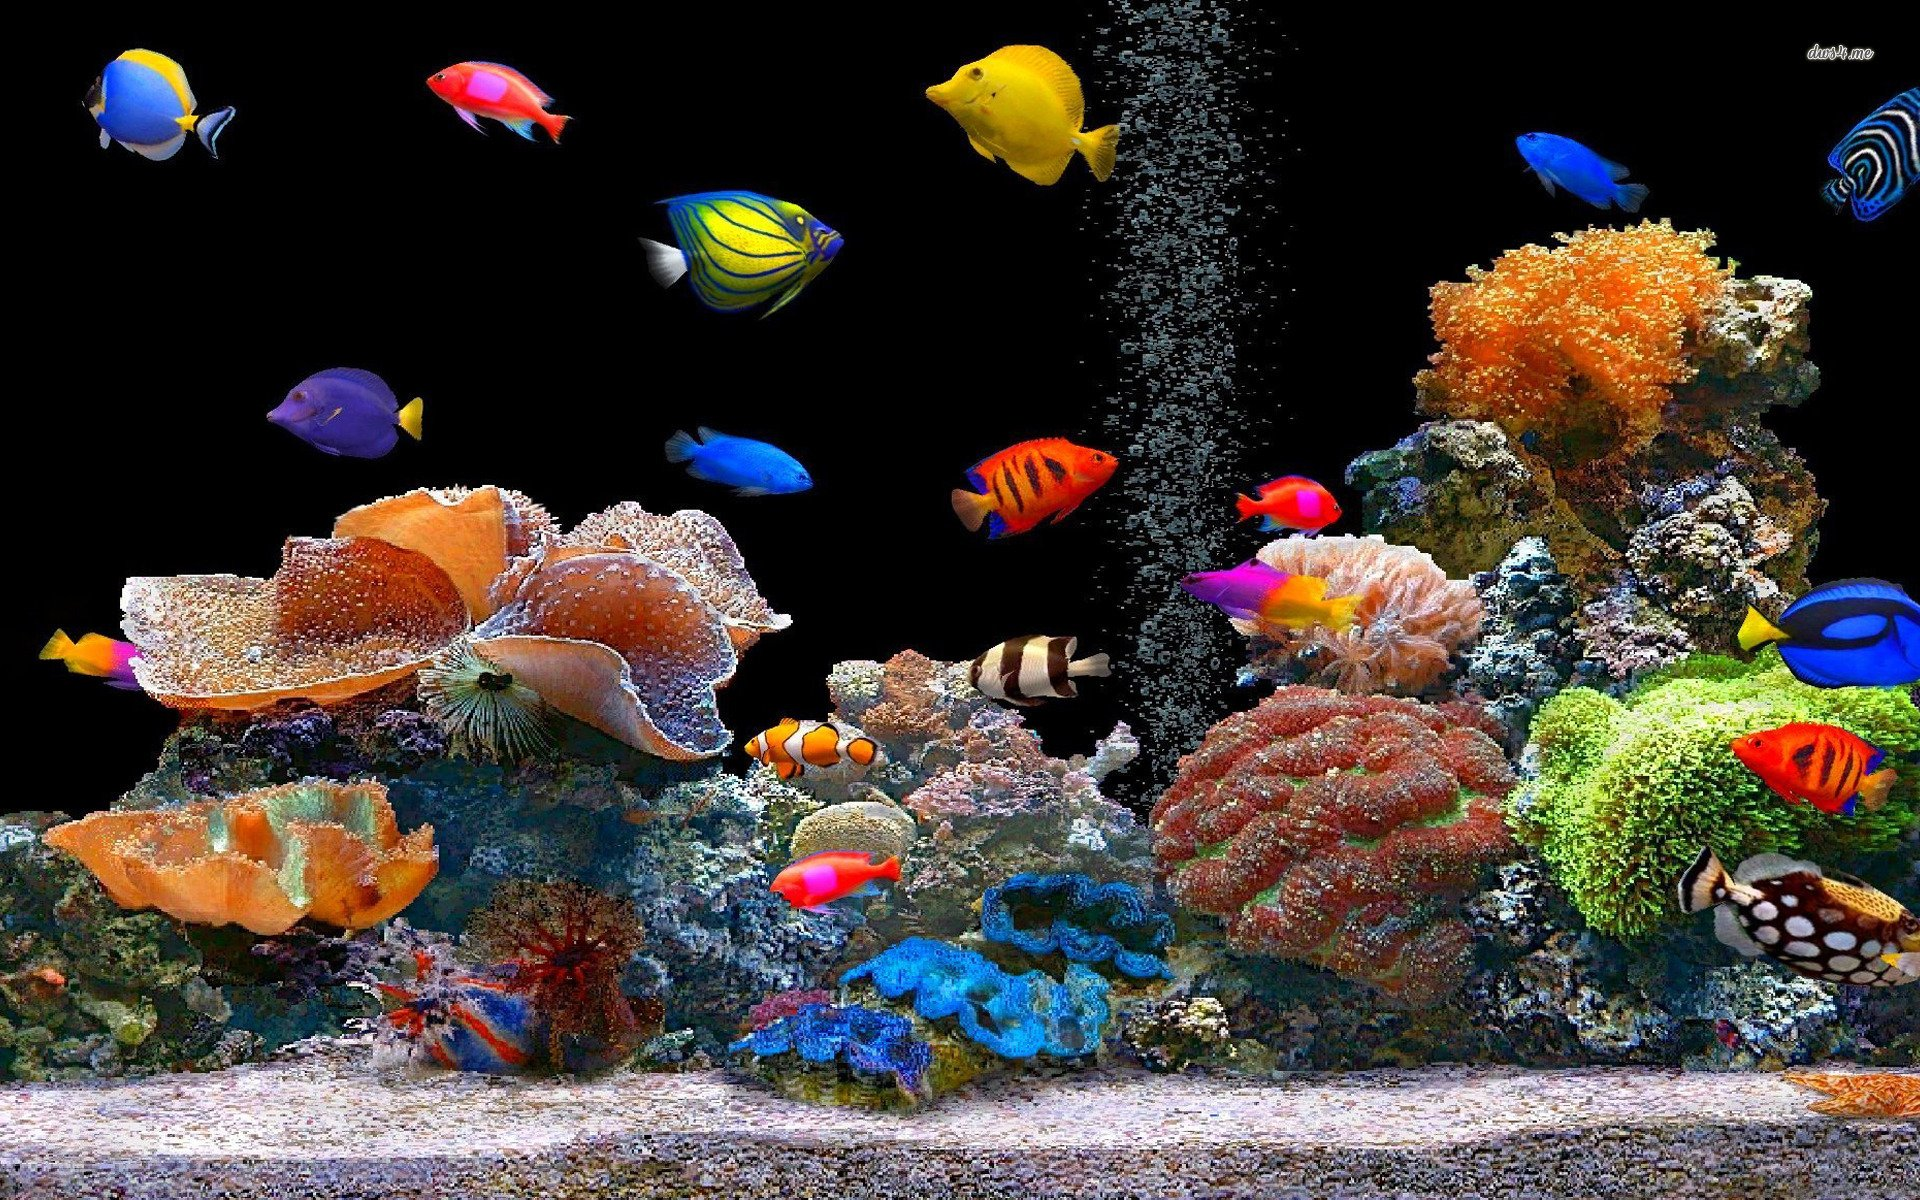 Tropical Fish School Desktop Animal 1920 X 1080 Oscar Fish Desktop 1920x1200